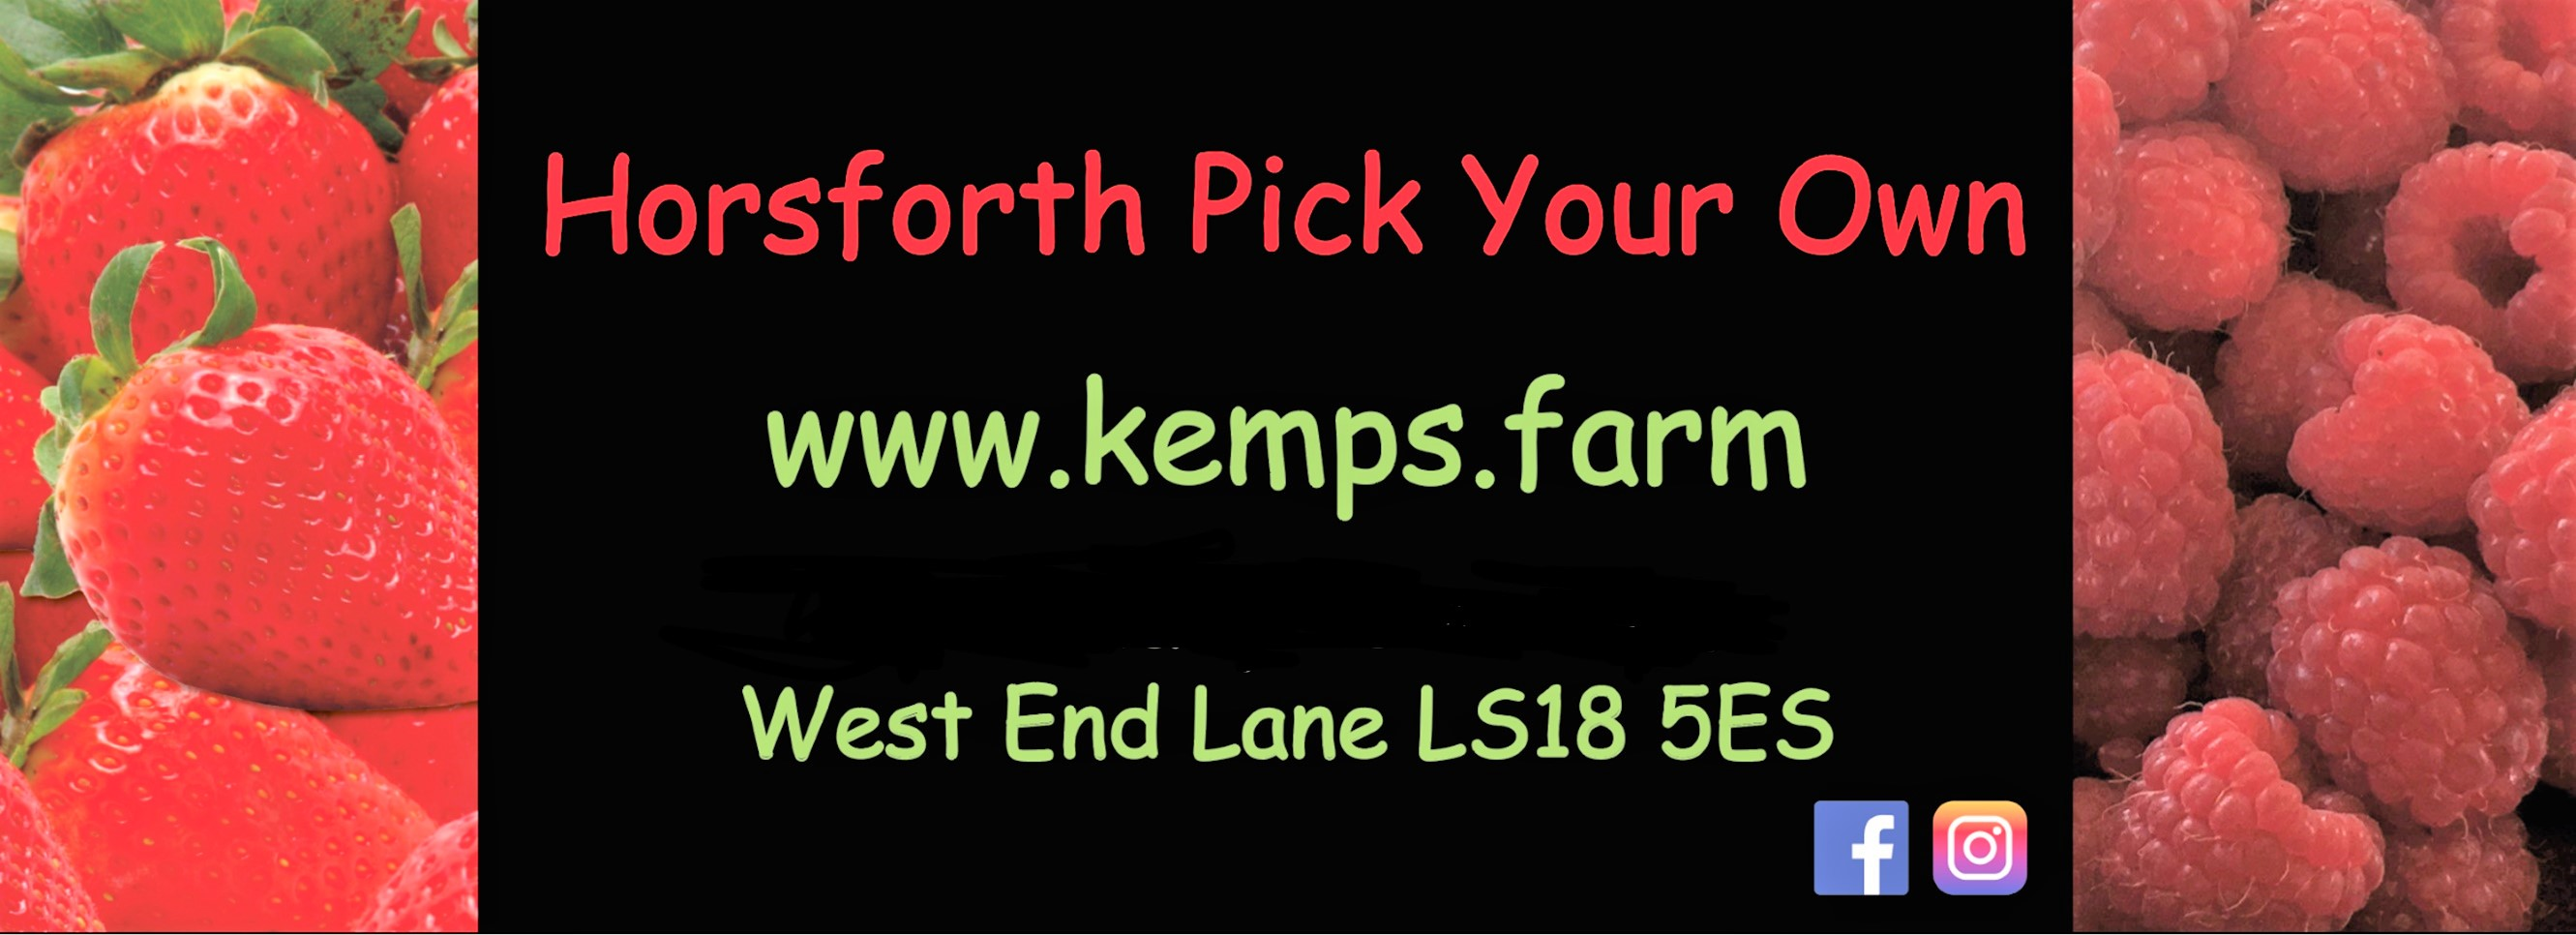 Kemps Farm - Horsforth Pick Your Own